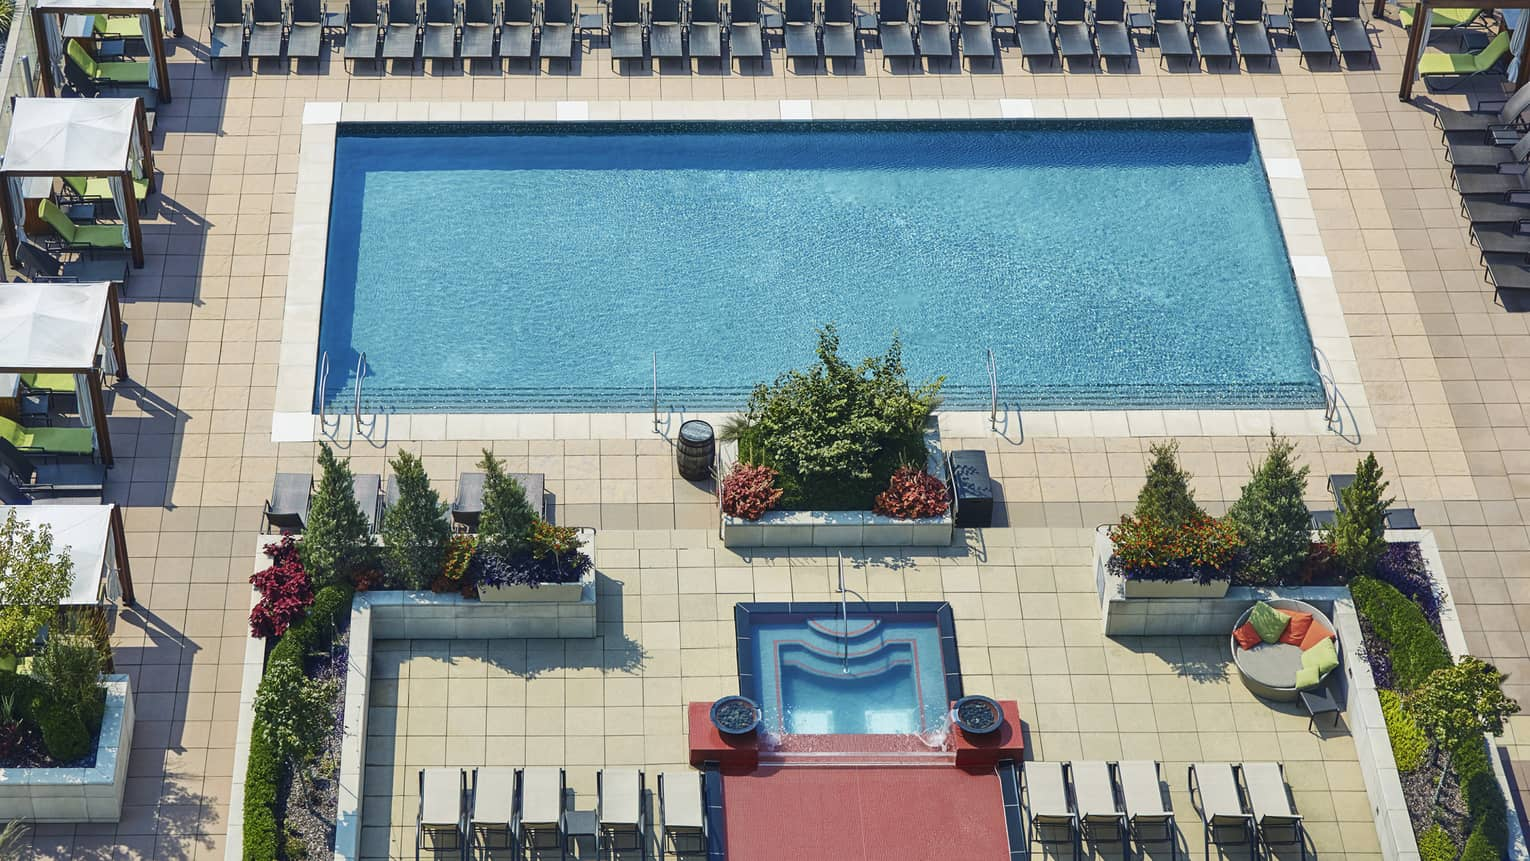 Aerial view of rooftop outdoor swimming pool and rows of patio chairs, cabanas